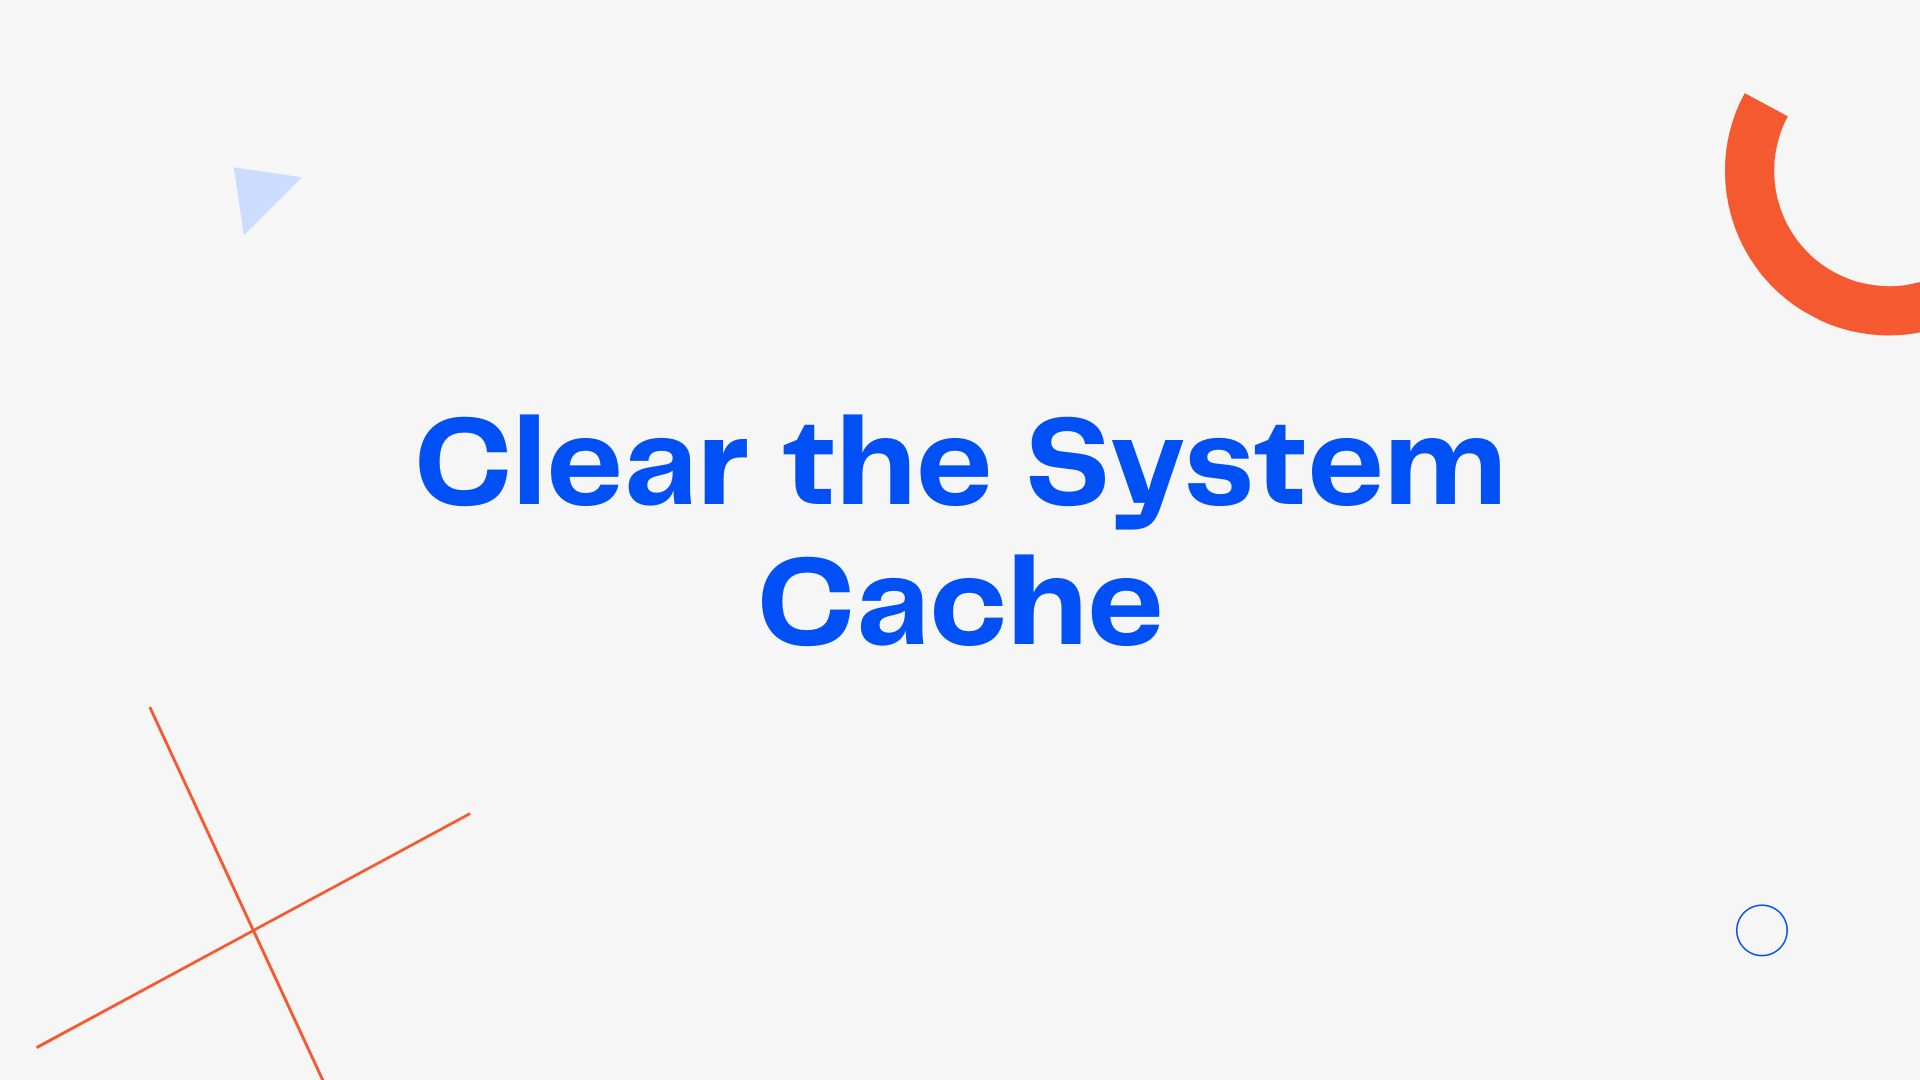 Clear system cache to fix [pii_email_cbd448bbd34c985e423c] error